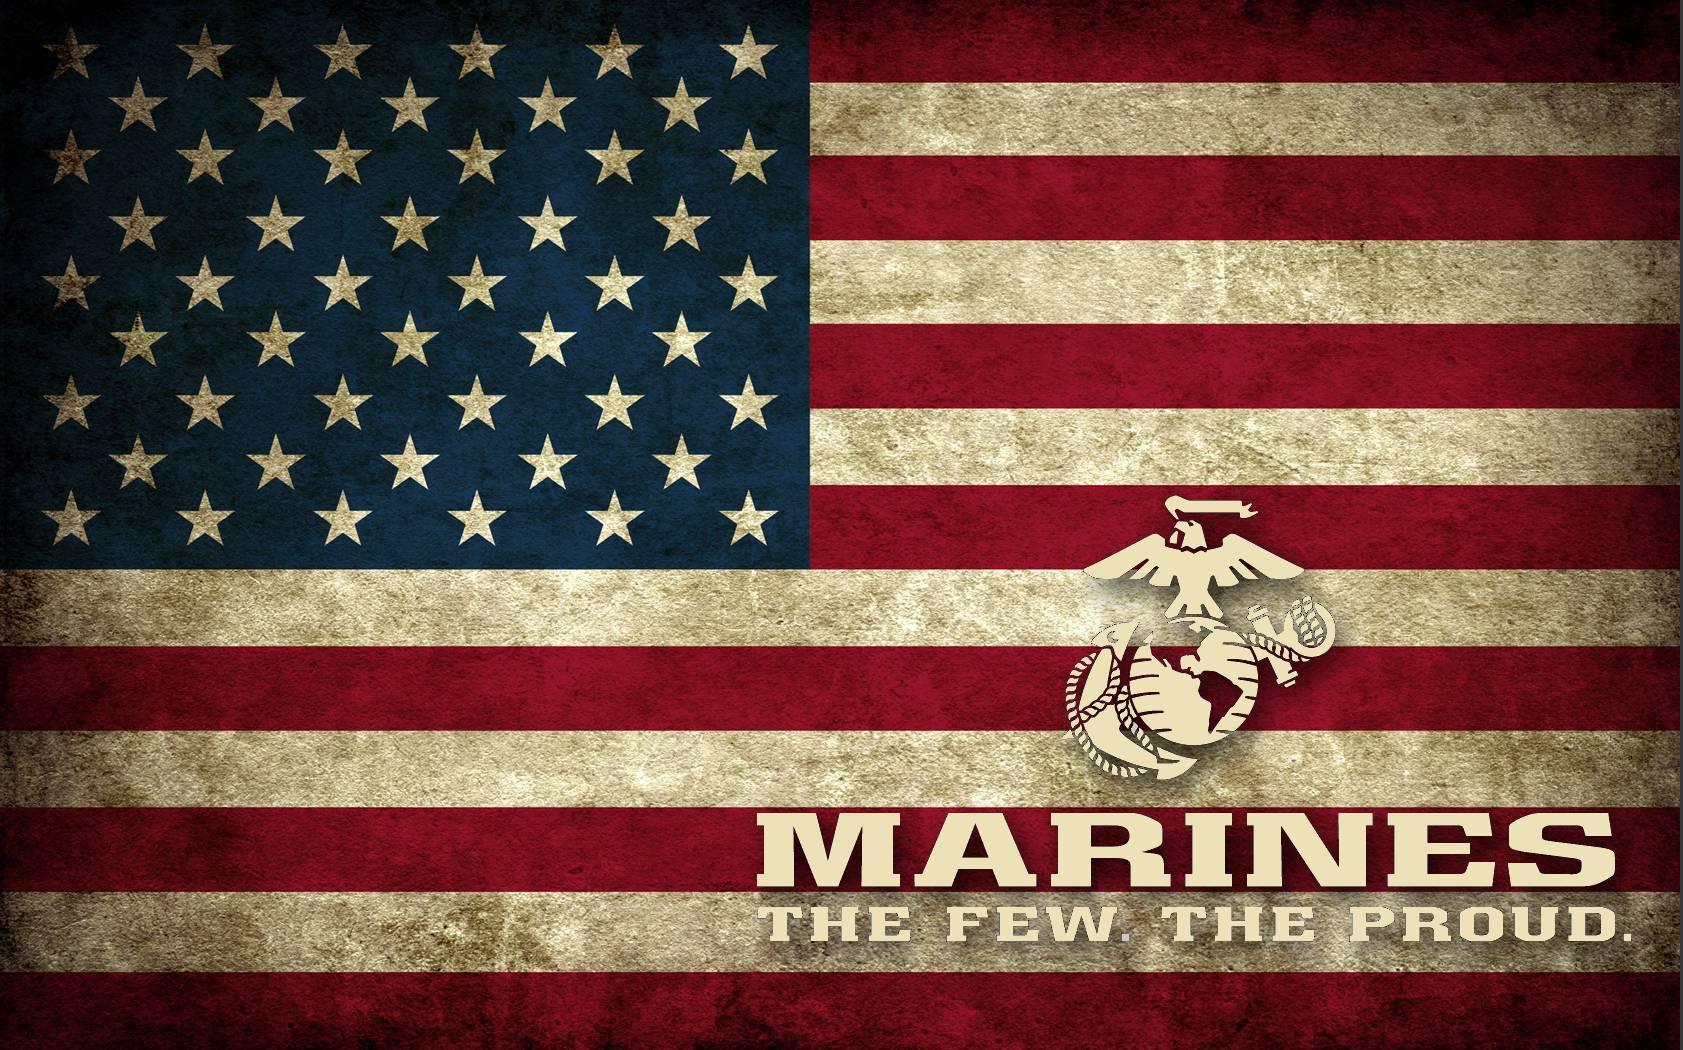 Us Marine Corps Wallpaper Images amp Pictures   Becuo 1683x1050